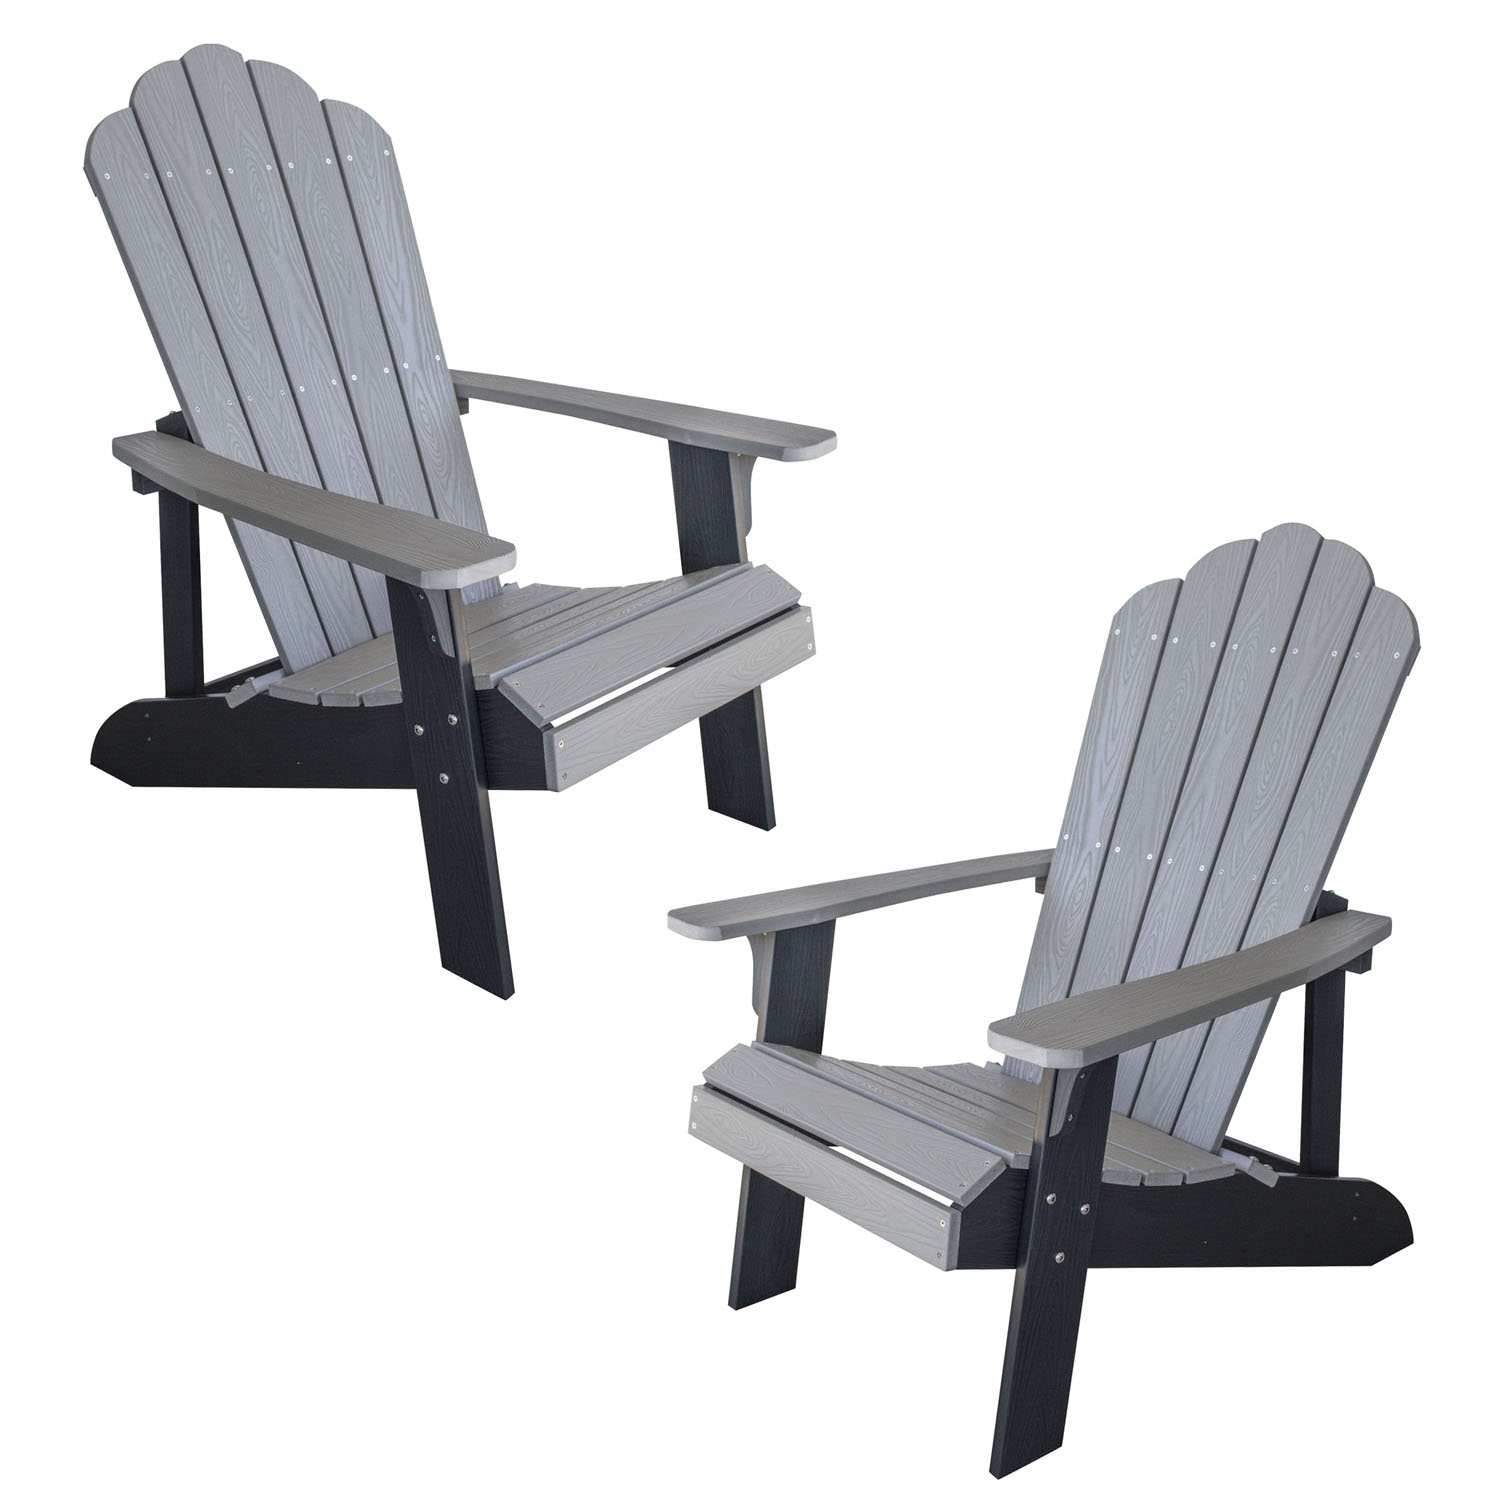 Simulated Wood Outdoor Two Tone Adirondack Chair, Gray with Black Accents, 2 Piece Set